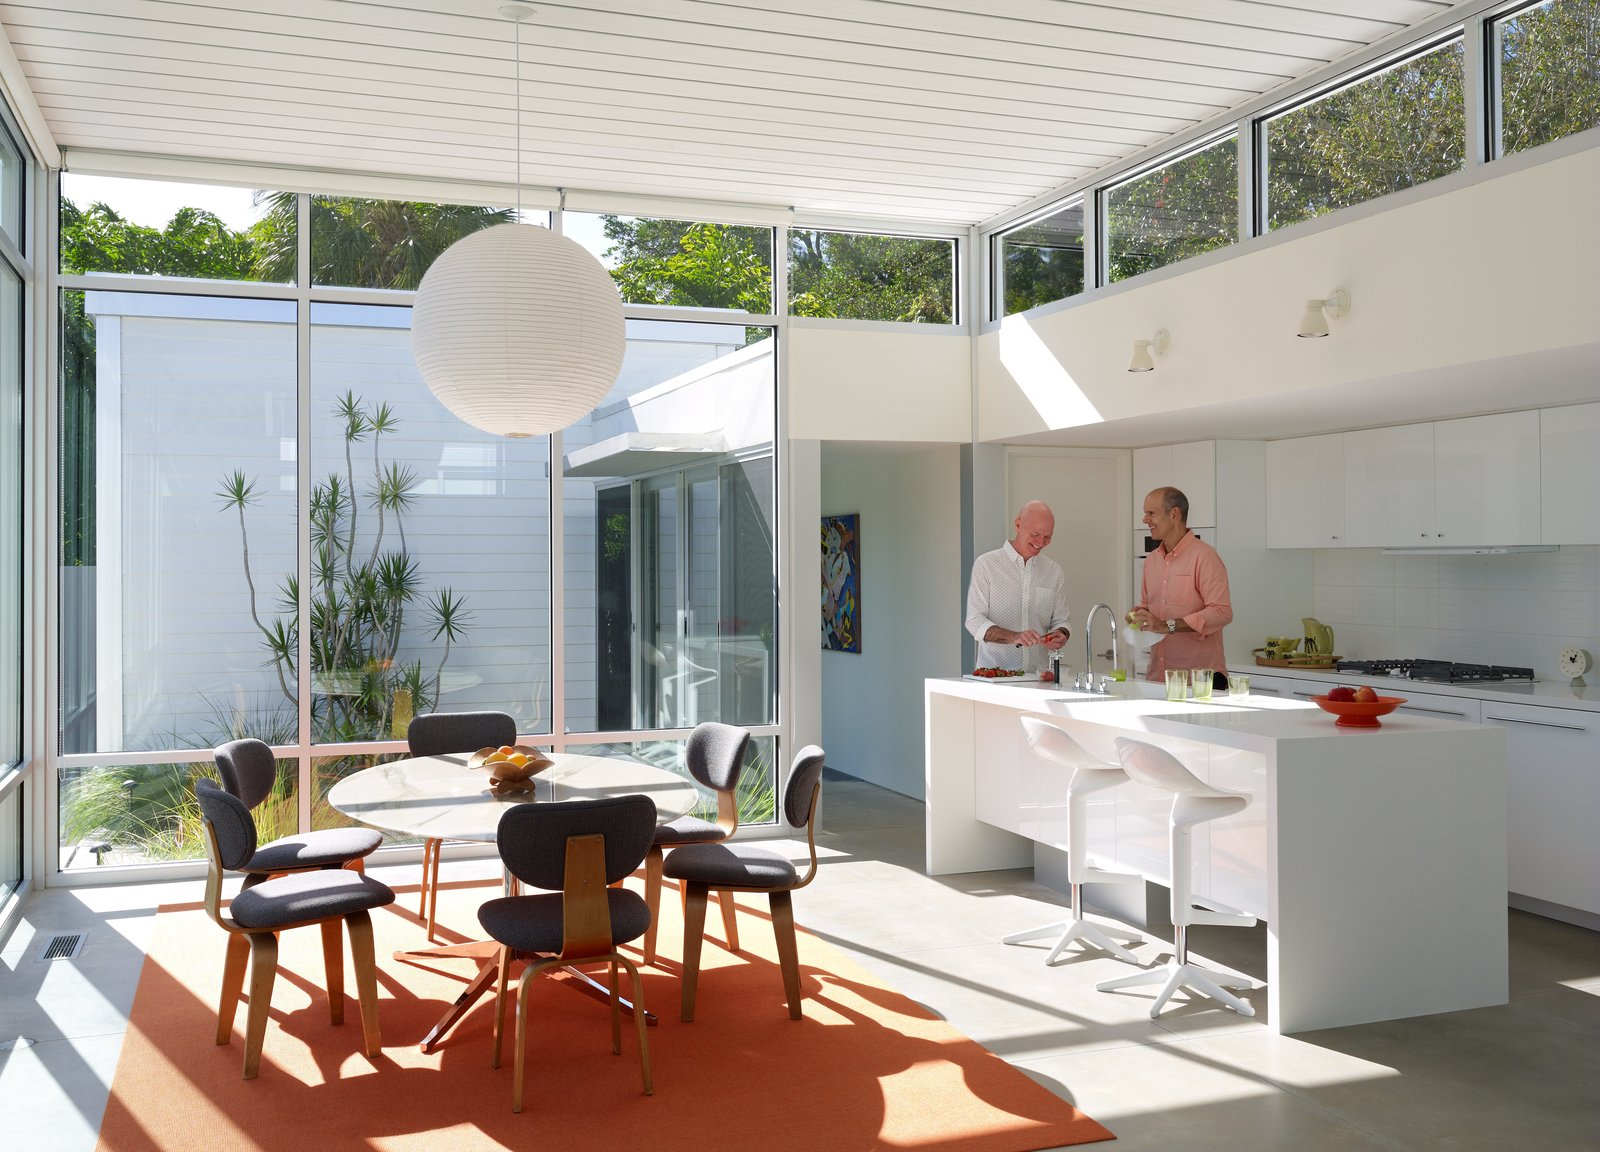 In the kitchen, Pirman and Tetreault gather around a custom Corian island with a Tara faucet by Dornbracht. Vintage Cees Braakman Combex series chairs and a marble Florence Knoll table bring natural materials to an architectural shell built from concrete, glass, and steel. Tagged: Kitchen and White Cabinet.  Midcentury Homes by Dwell from This Sparkling New Home Is a Perfect Remake of Classic Sarasota School Modernism